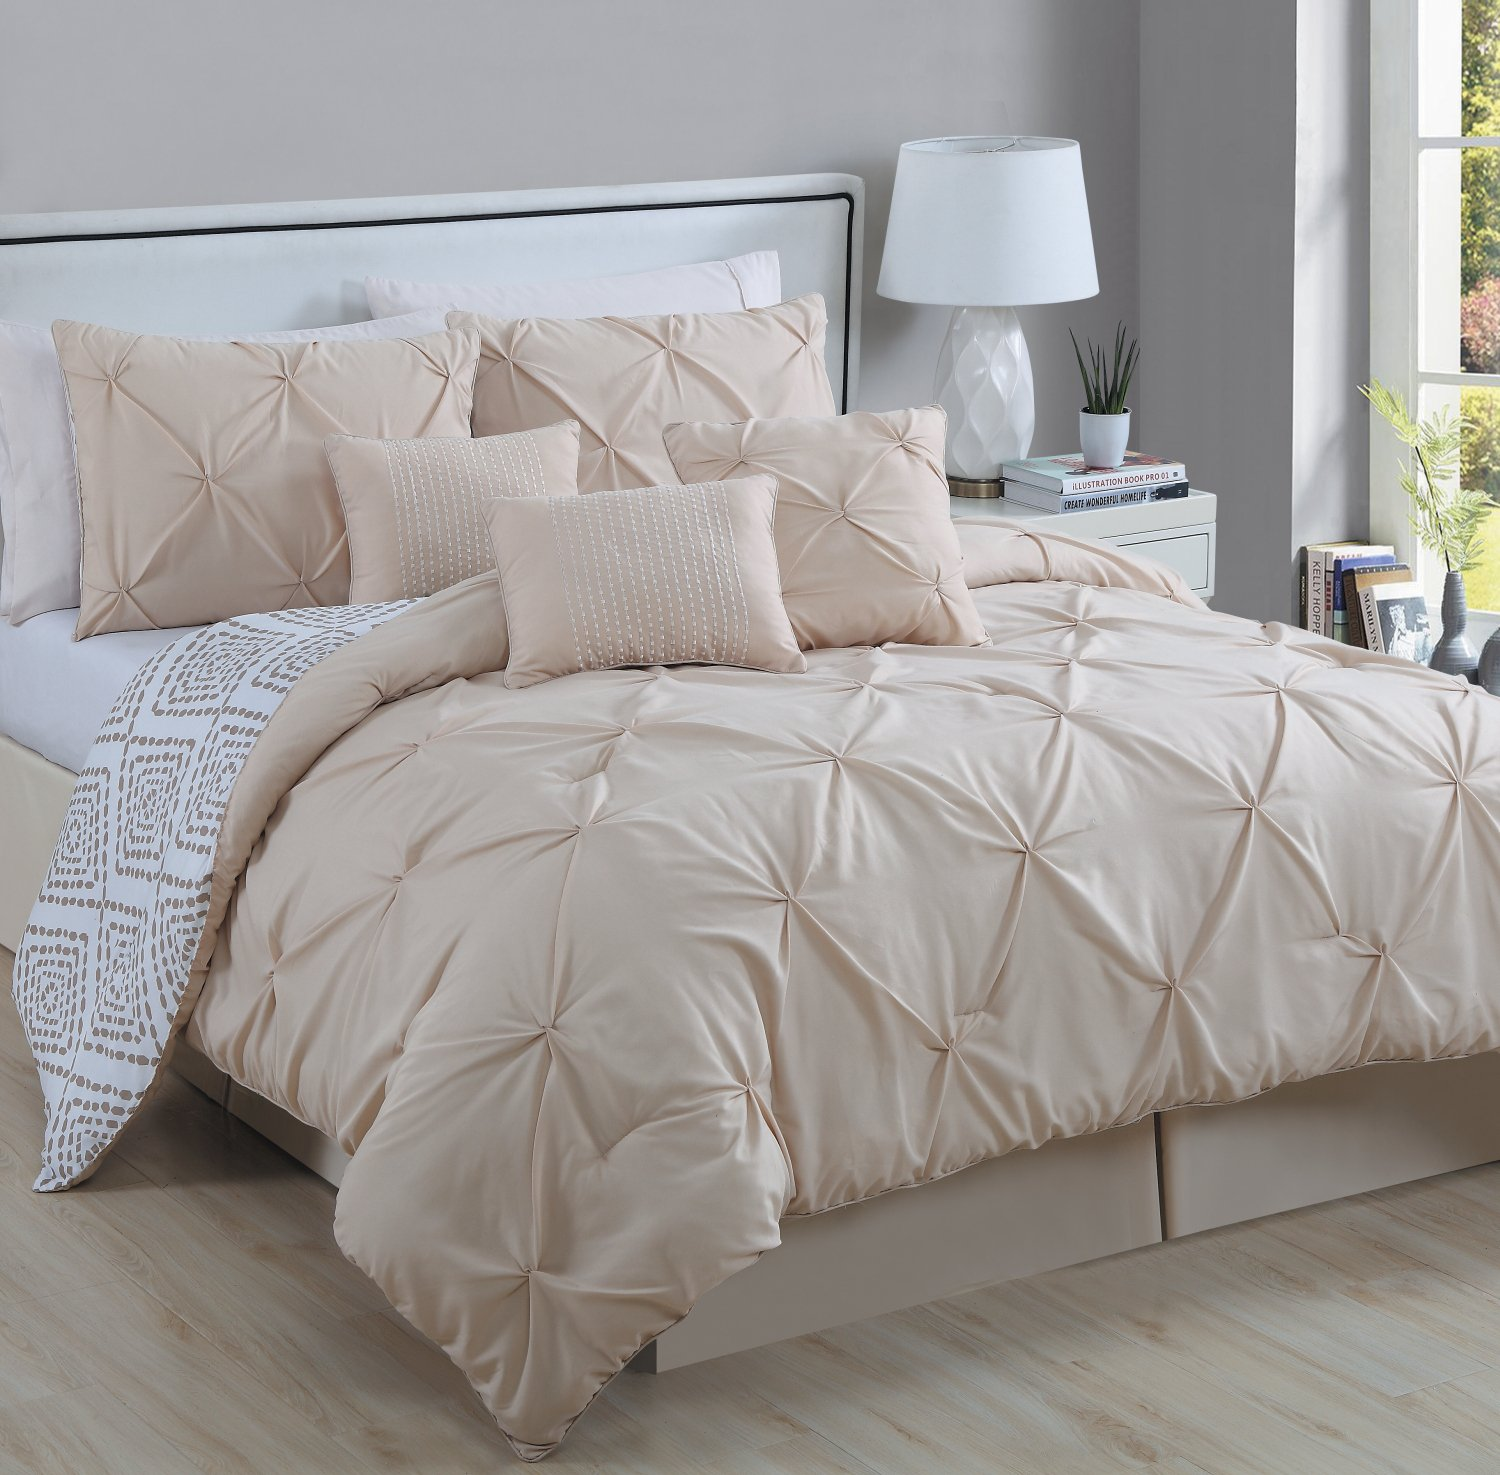 s set prod diamond pintuck pleat pinched hg pinch ruched pc src station comforter ruffled brown com p pleated